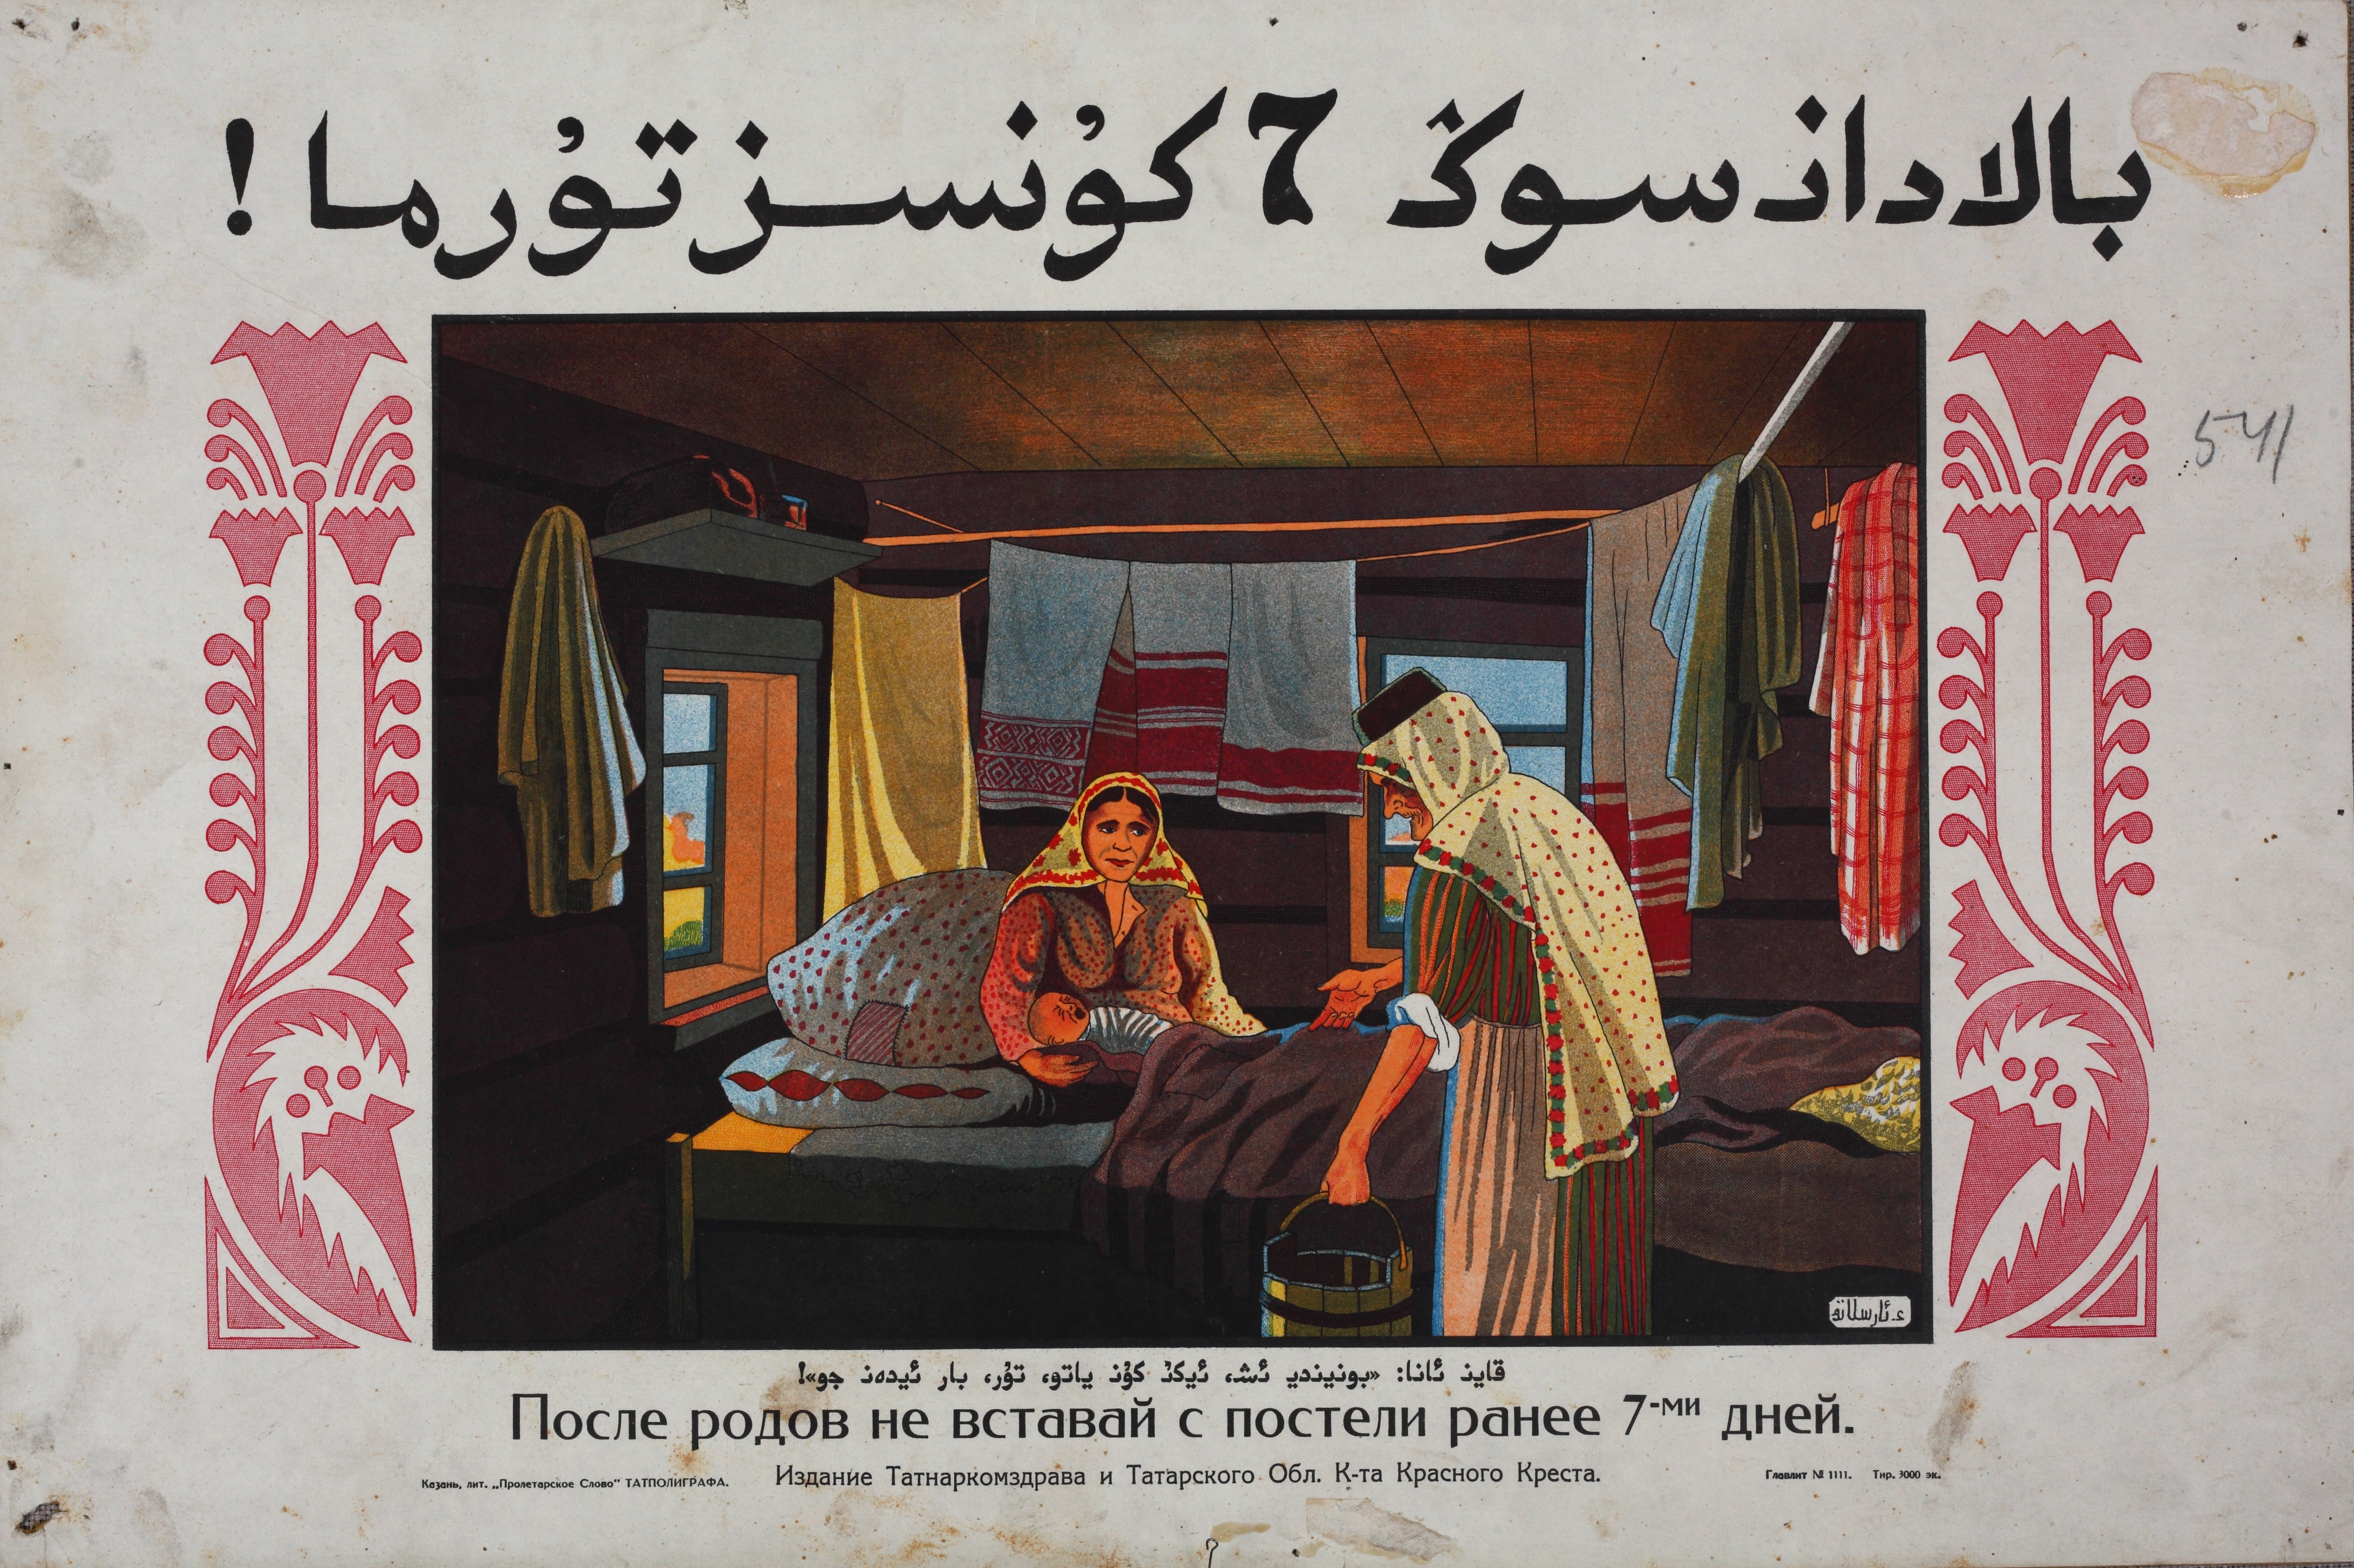 """Don't leave your bed earlier than 7 days after delivery"" – Russian and Tatar, Kazan, 1927 (SCMCHR)"